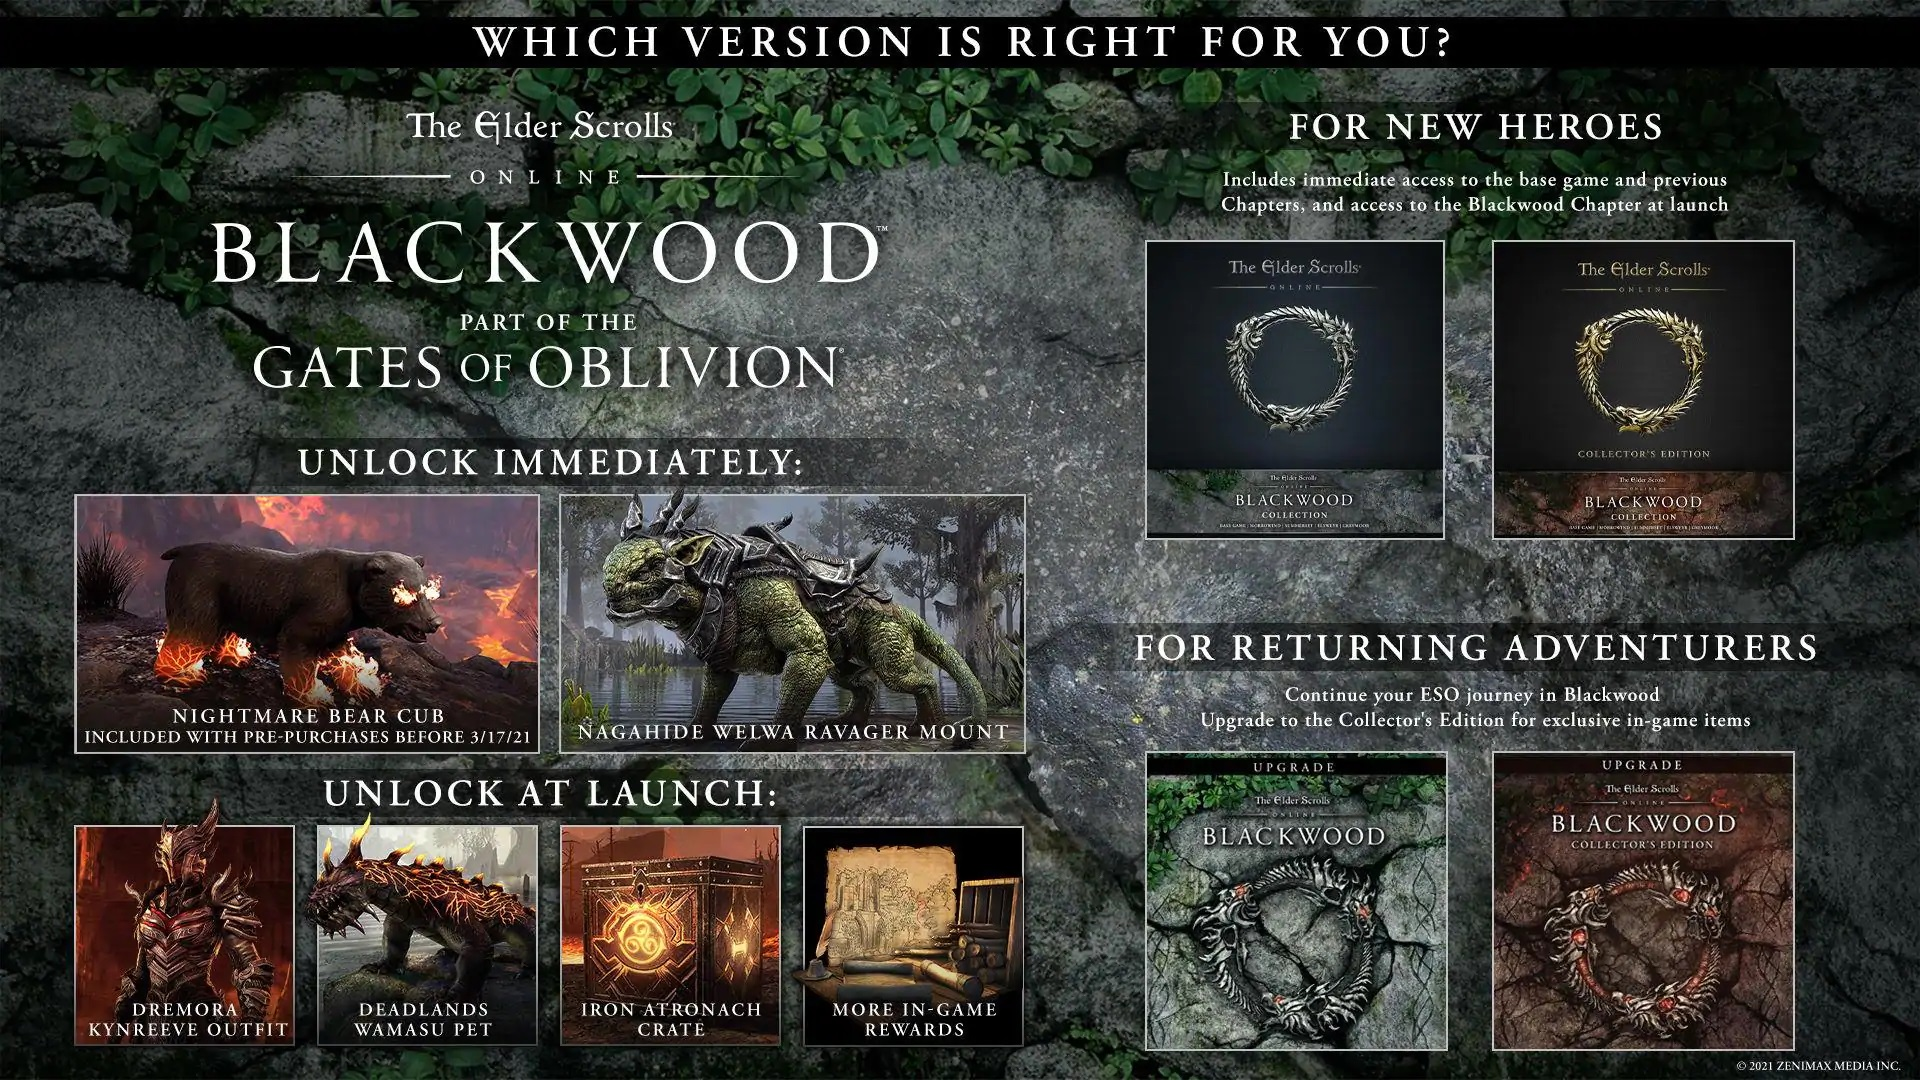 The Elder Scrolls Online Blackwood preorder ESO Blackwood preorder The Elder Scrolls Online gates of oblivion ESO gates of oblivion